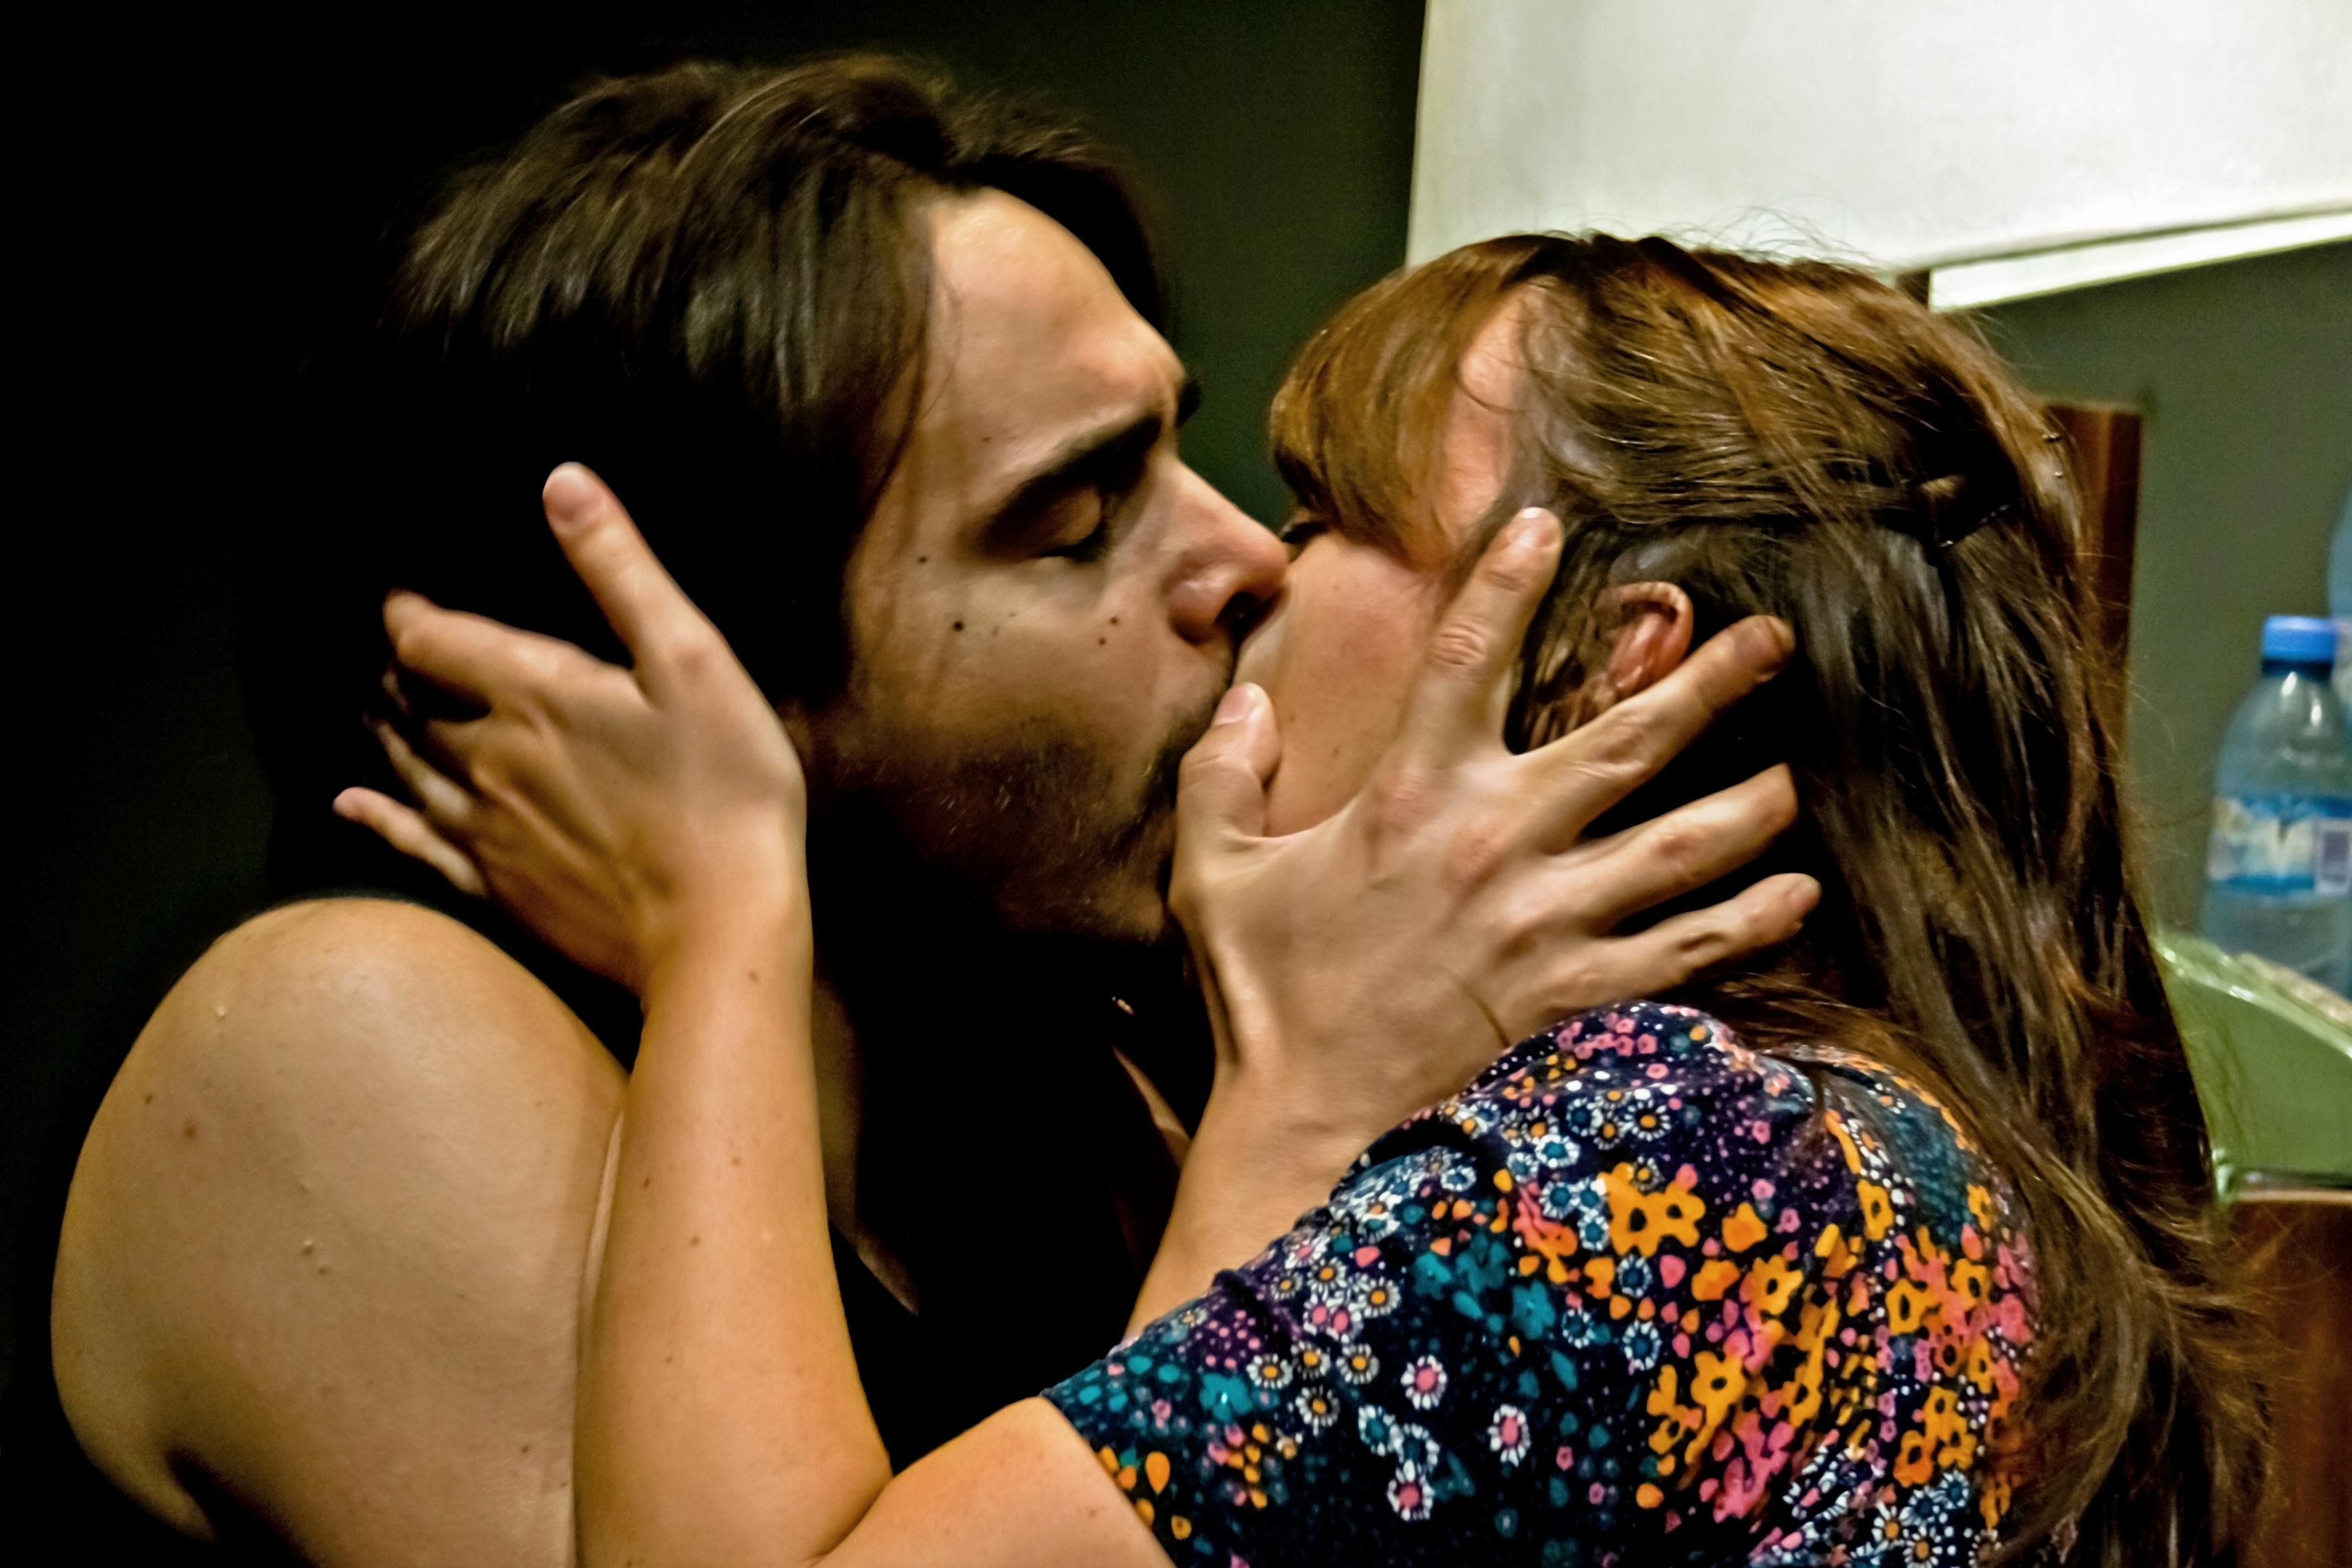 A man and a woman hold each others' heads while kissing passionately.